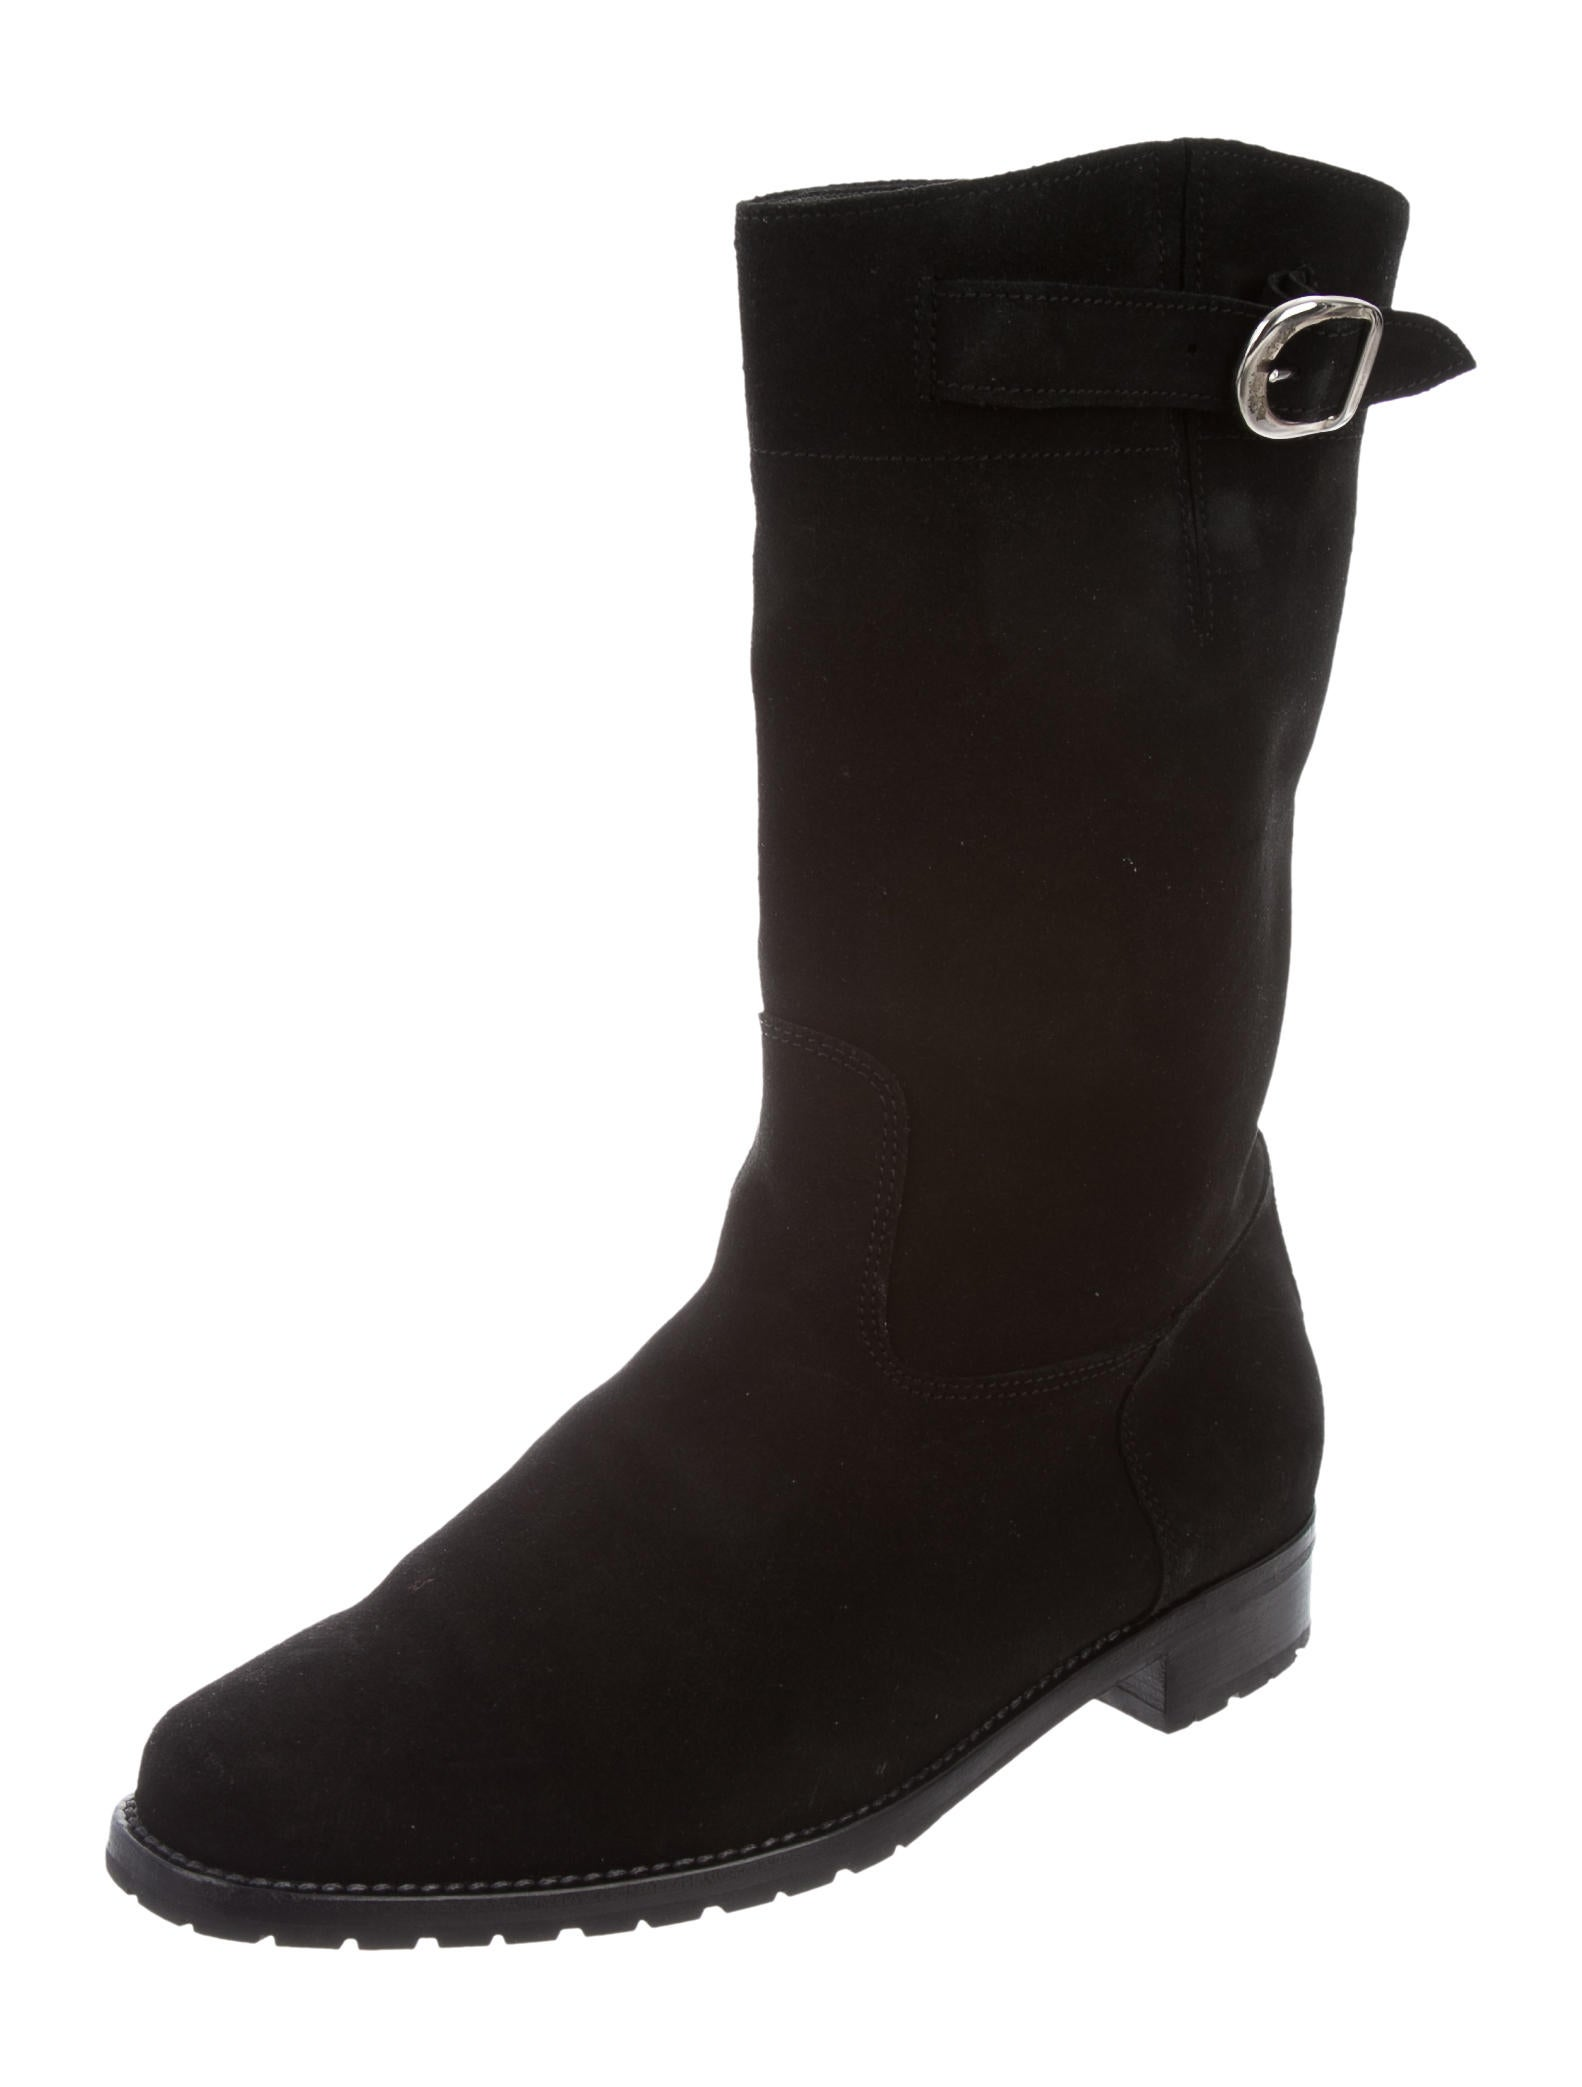 manolo blahnik suede mid calf boots shoes moo68731